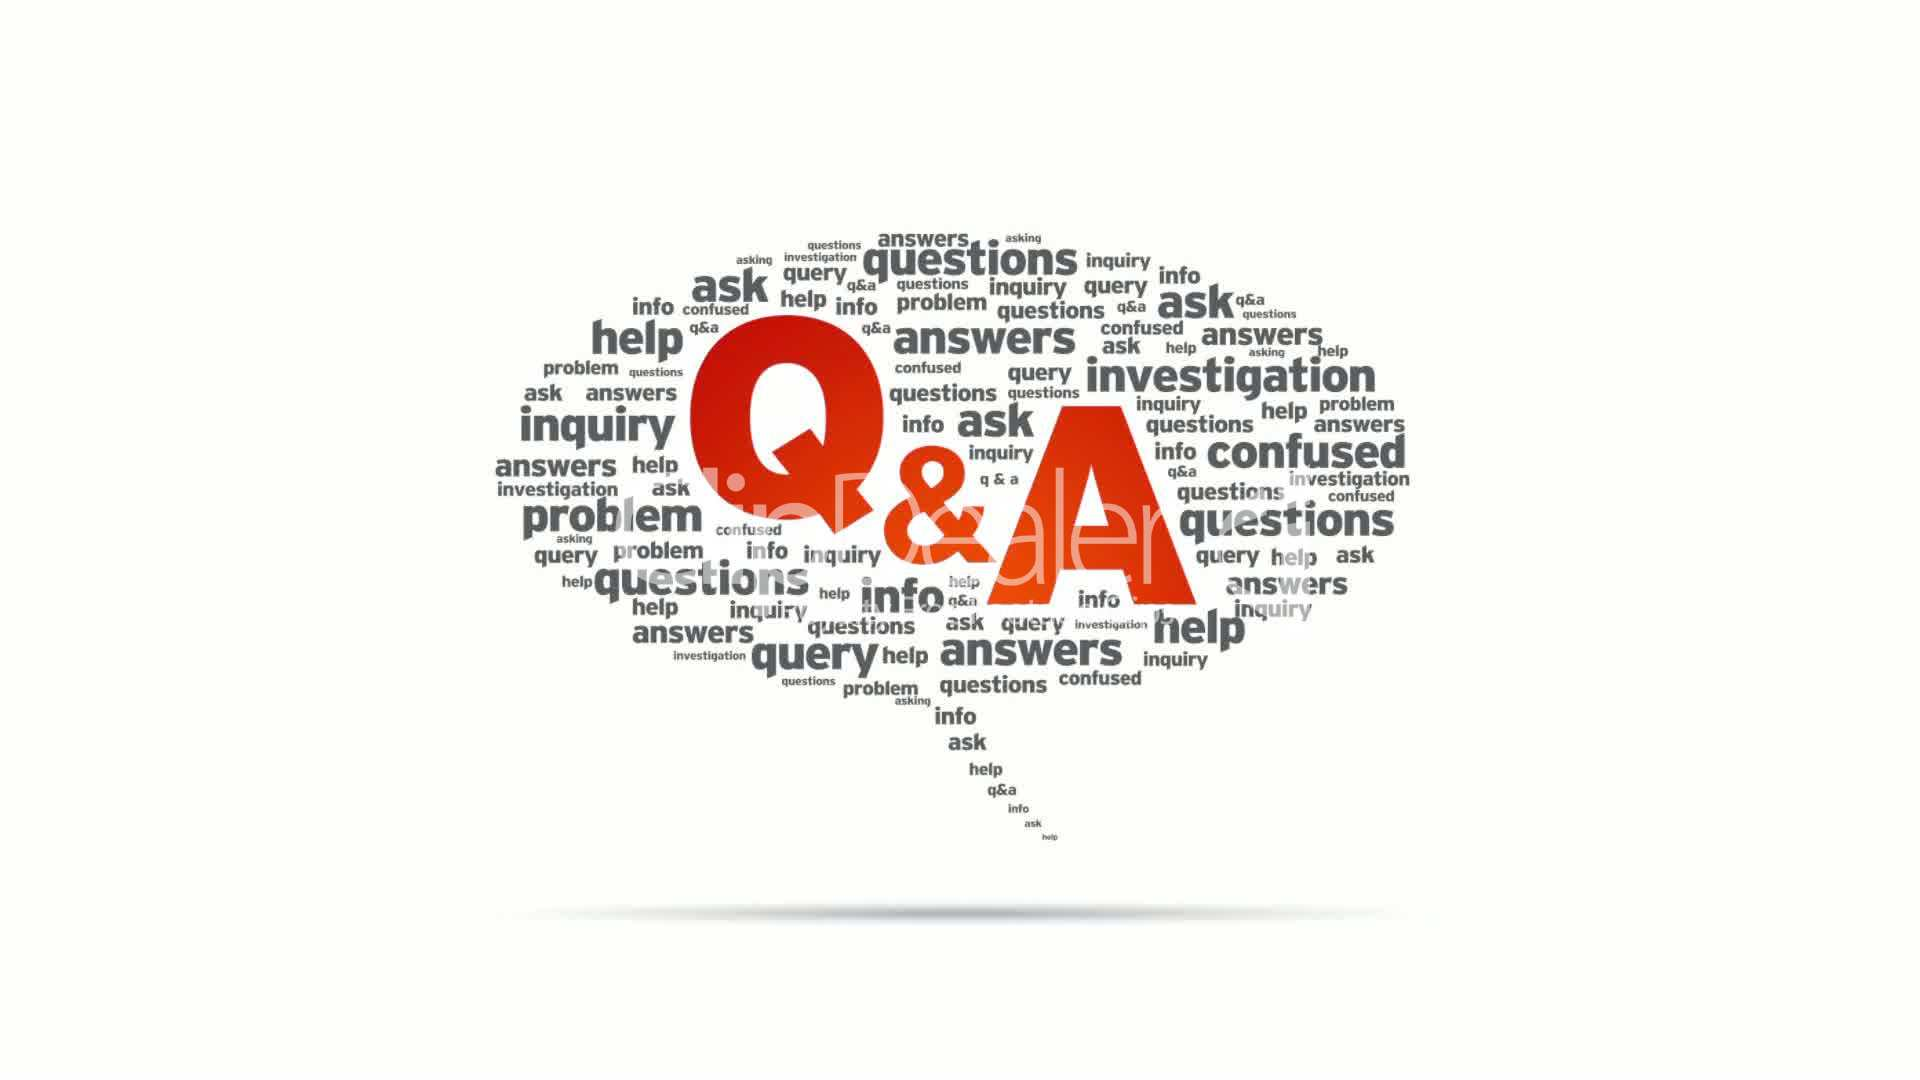 Questions And Answers Speech Bubble: Royalty-free video